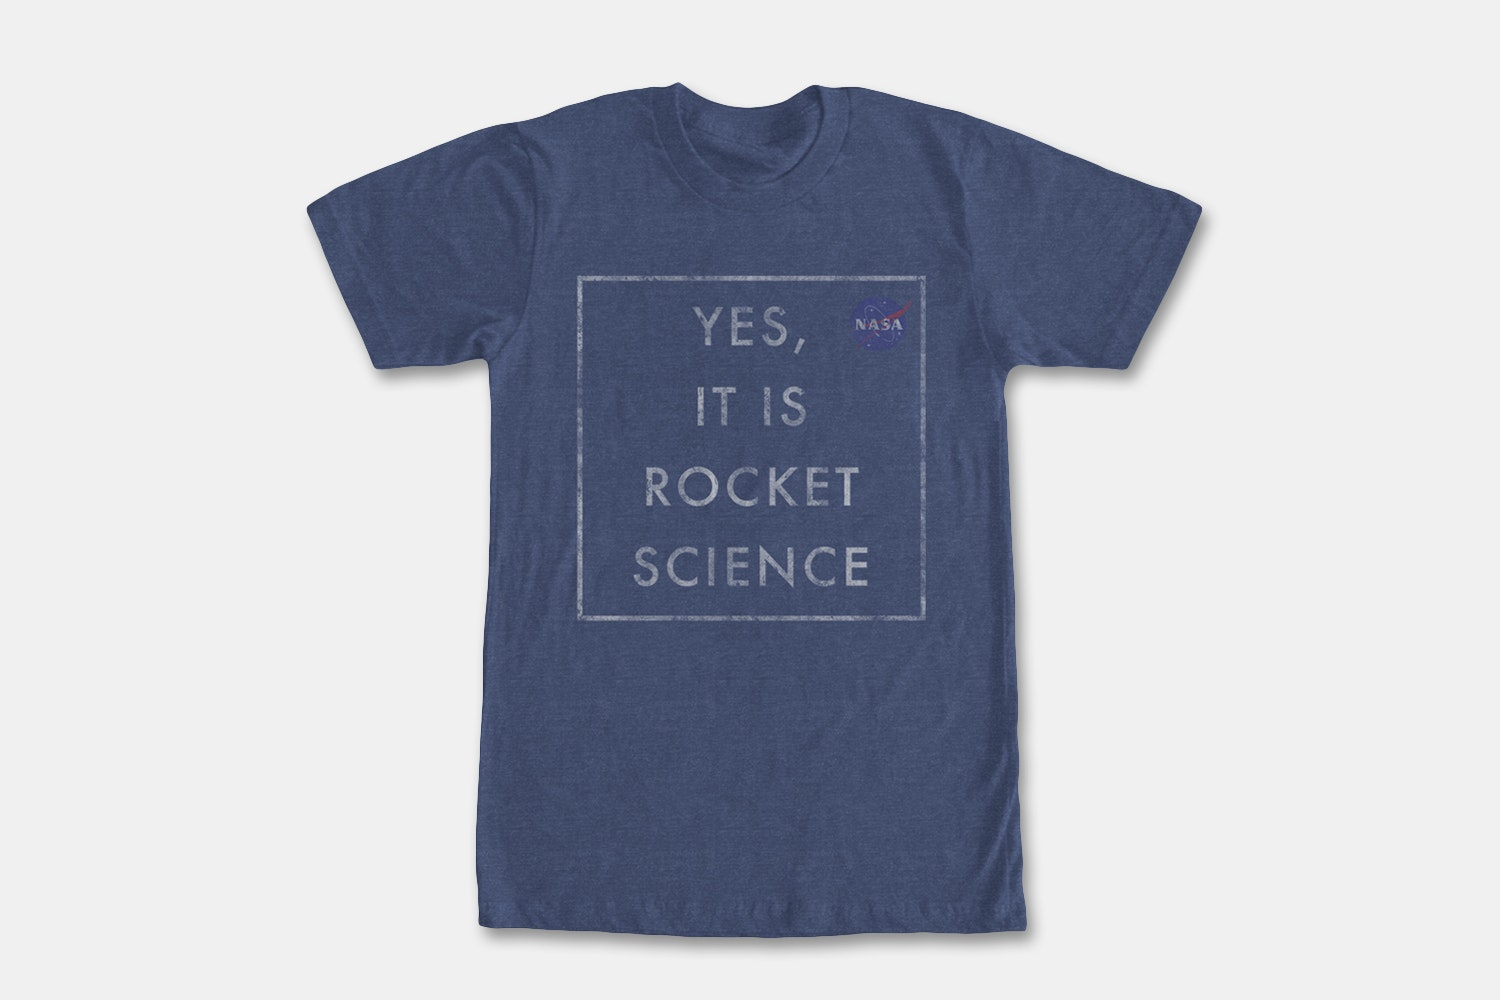 Yes, Rocket Science - Navy Heather